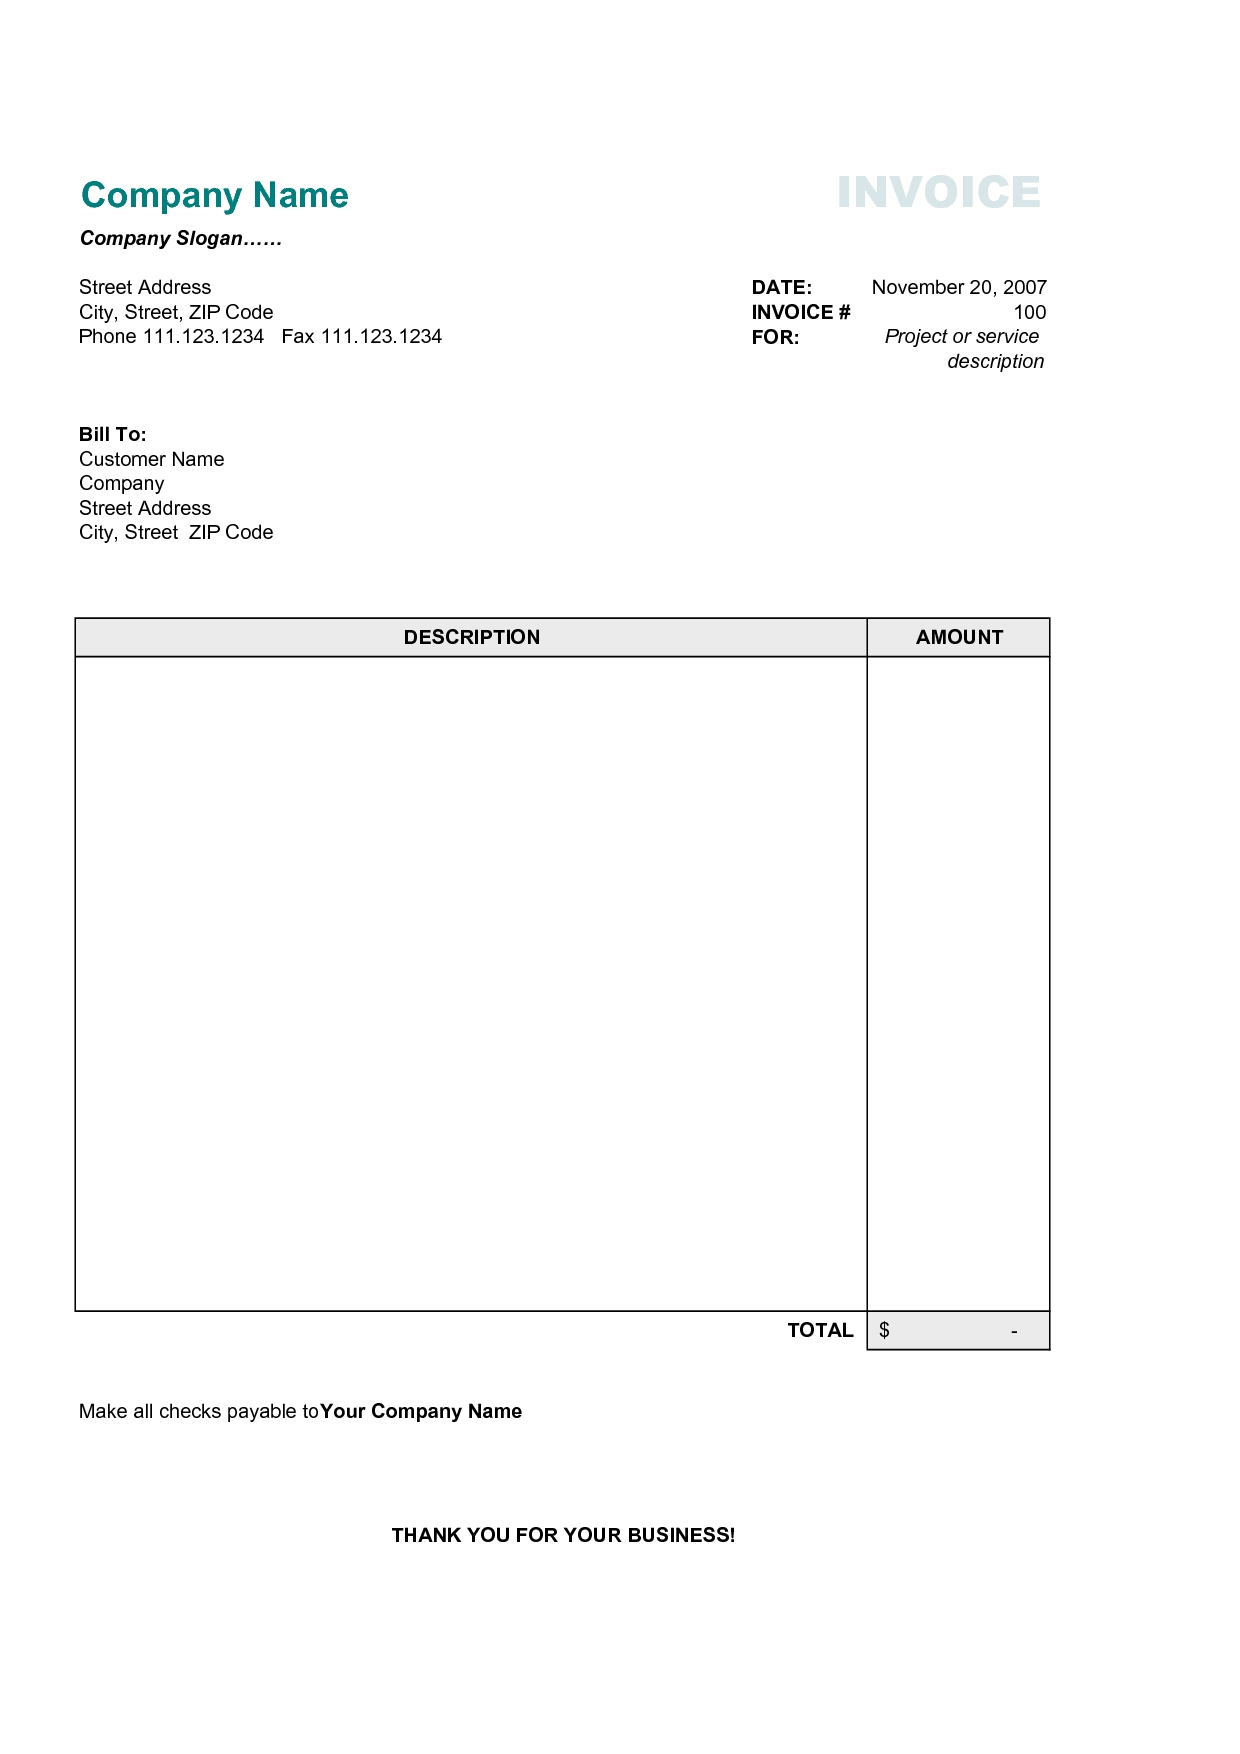 download invoice free malignant fibrous histiocytoma pathology free business invoice templates word